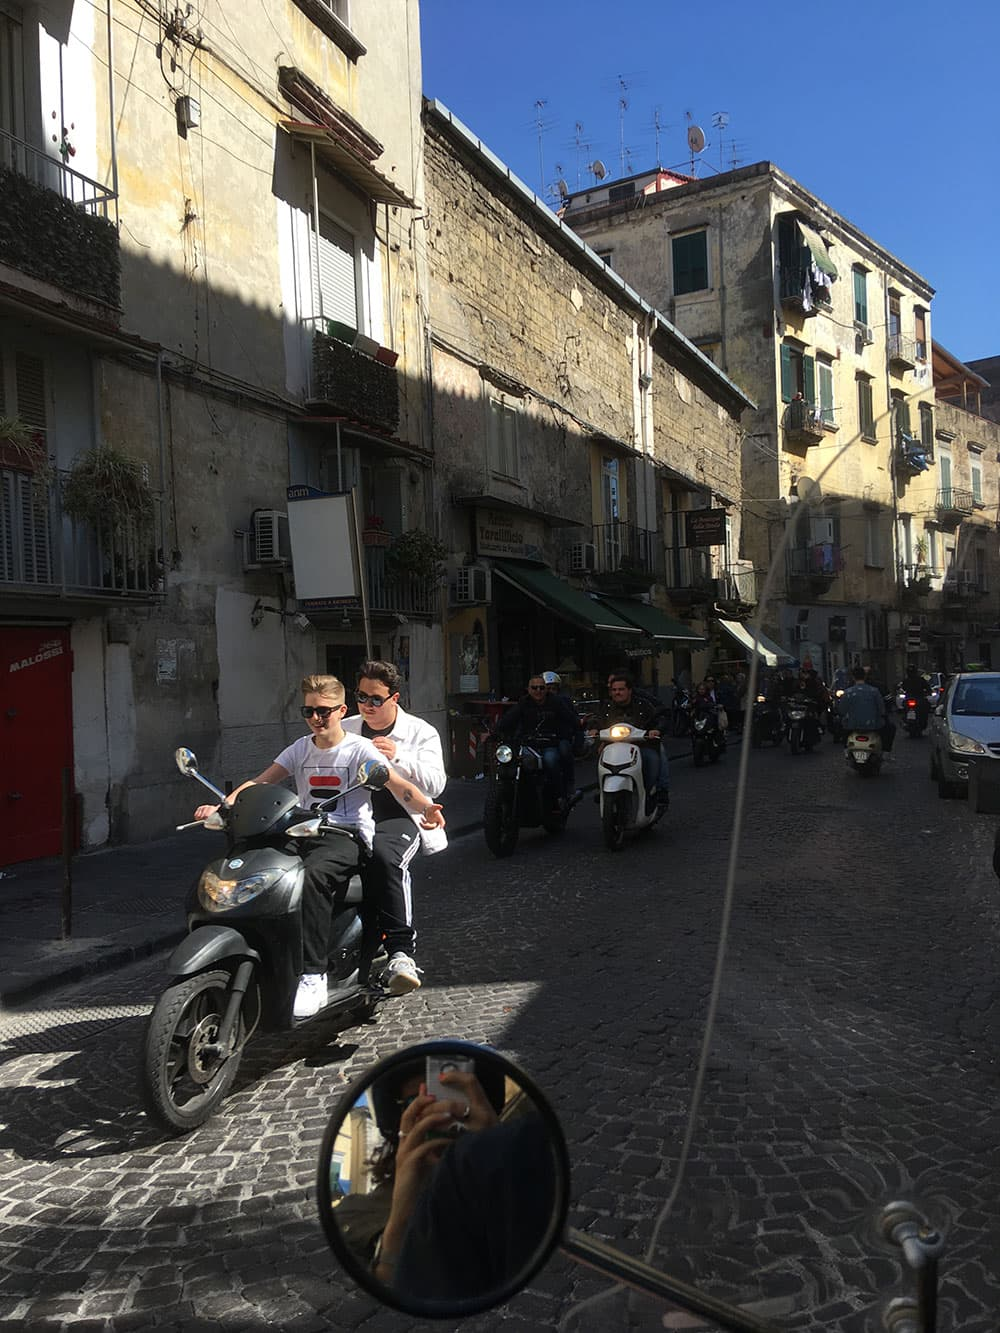 Locals riding around Naples on scooters